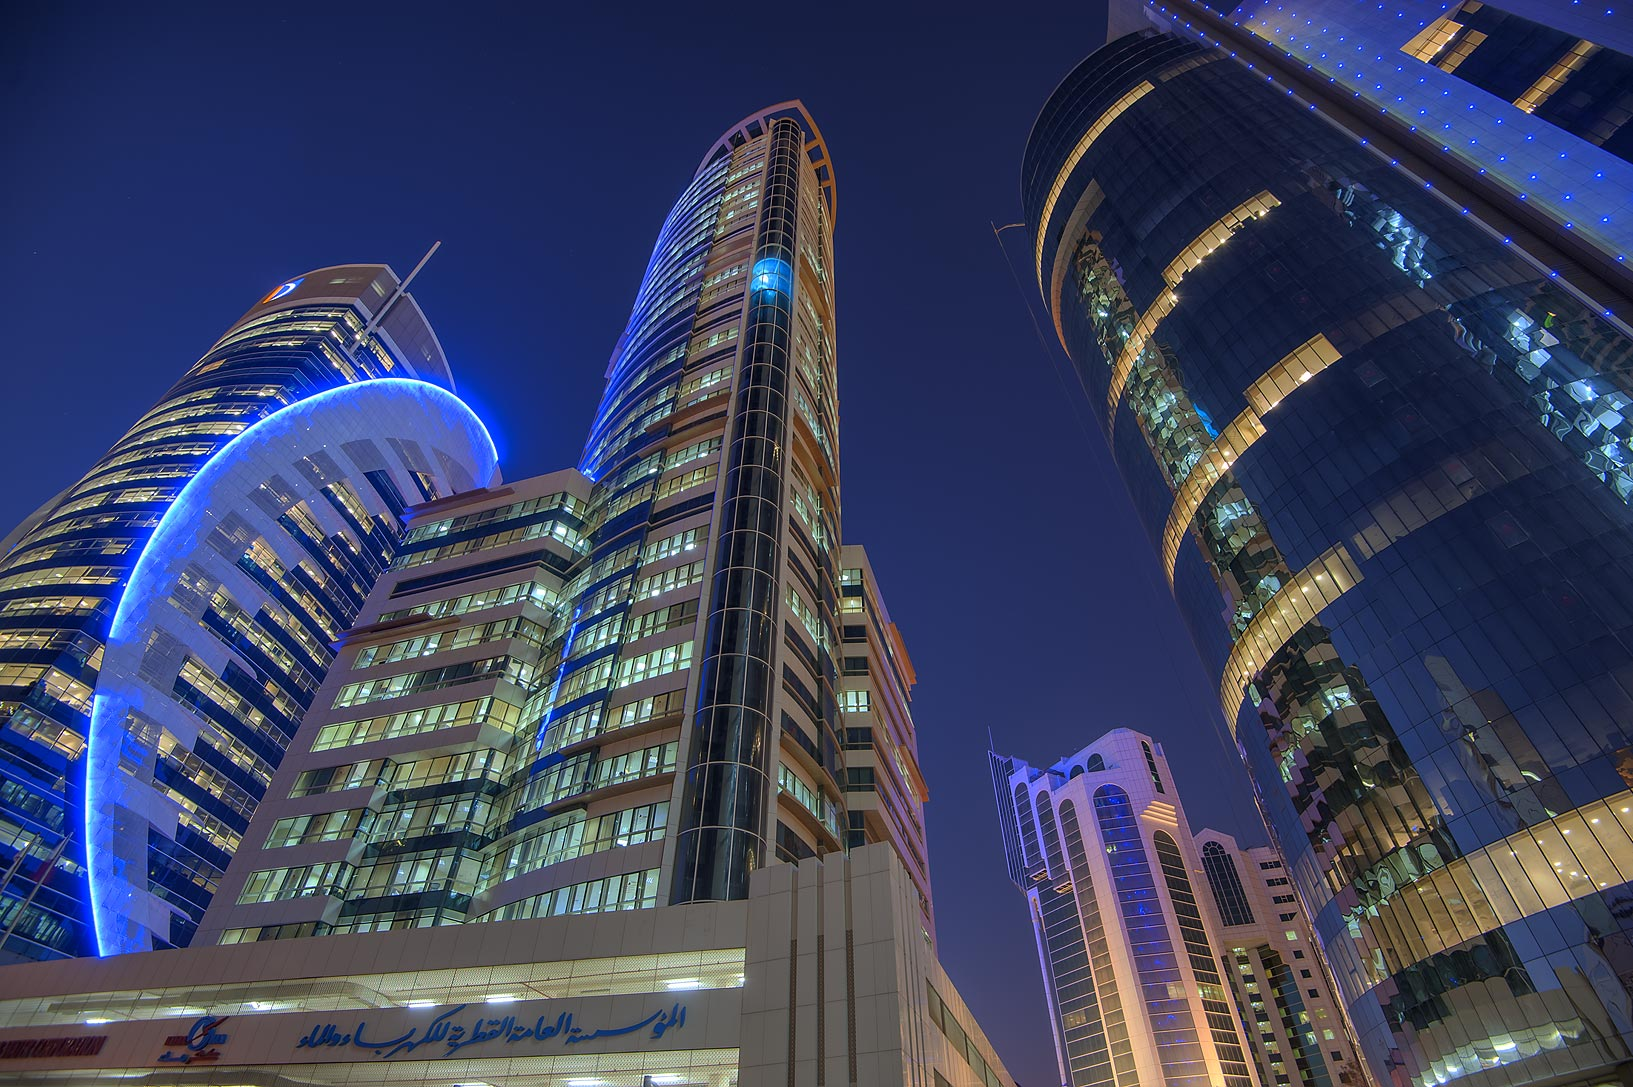 Kahramaa and Nakheel towers in West Bay. Doha, Qatar